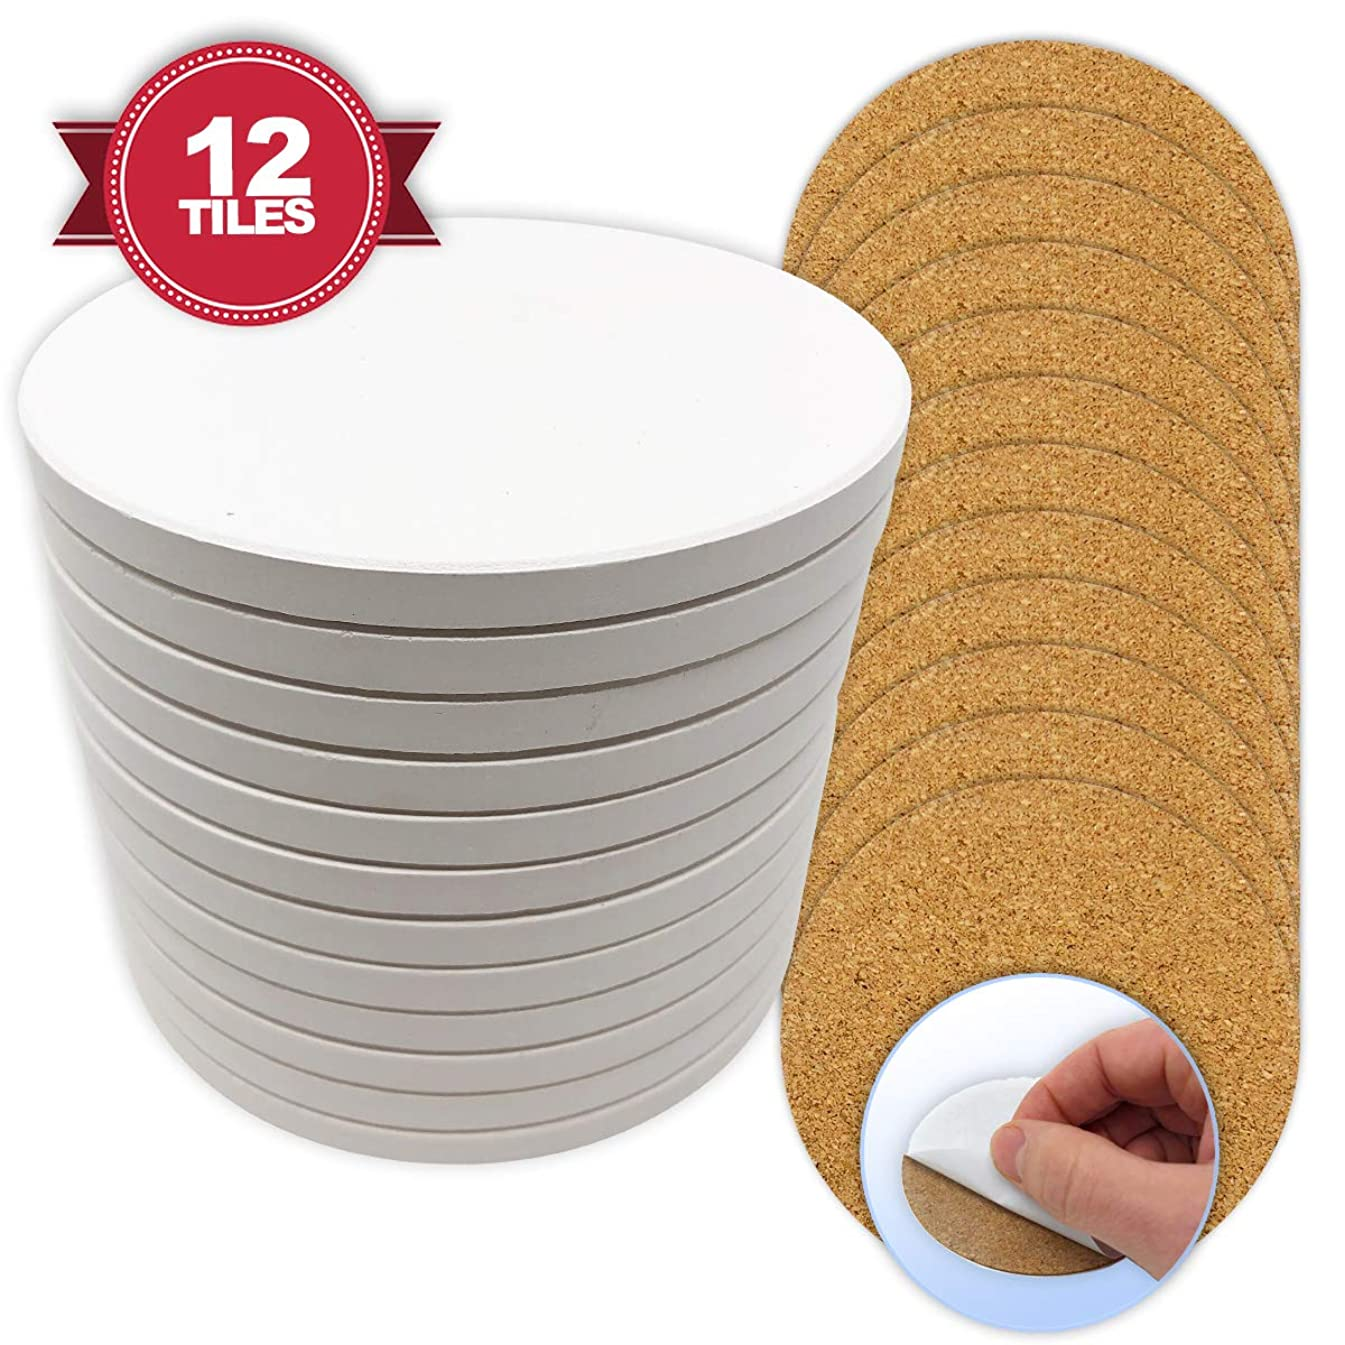 Ceramic Tiles for Crafts Coasters,12 Ceramic White Tiles 4-Inch with Cork Backing Pads, Use with Alcohol Ink or Acrylic Pouring, DIY Make Your Own Coasters, Mosaics, Painting Projects, Decoupage